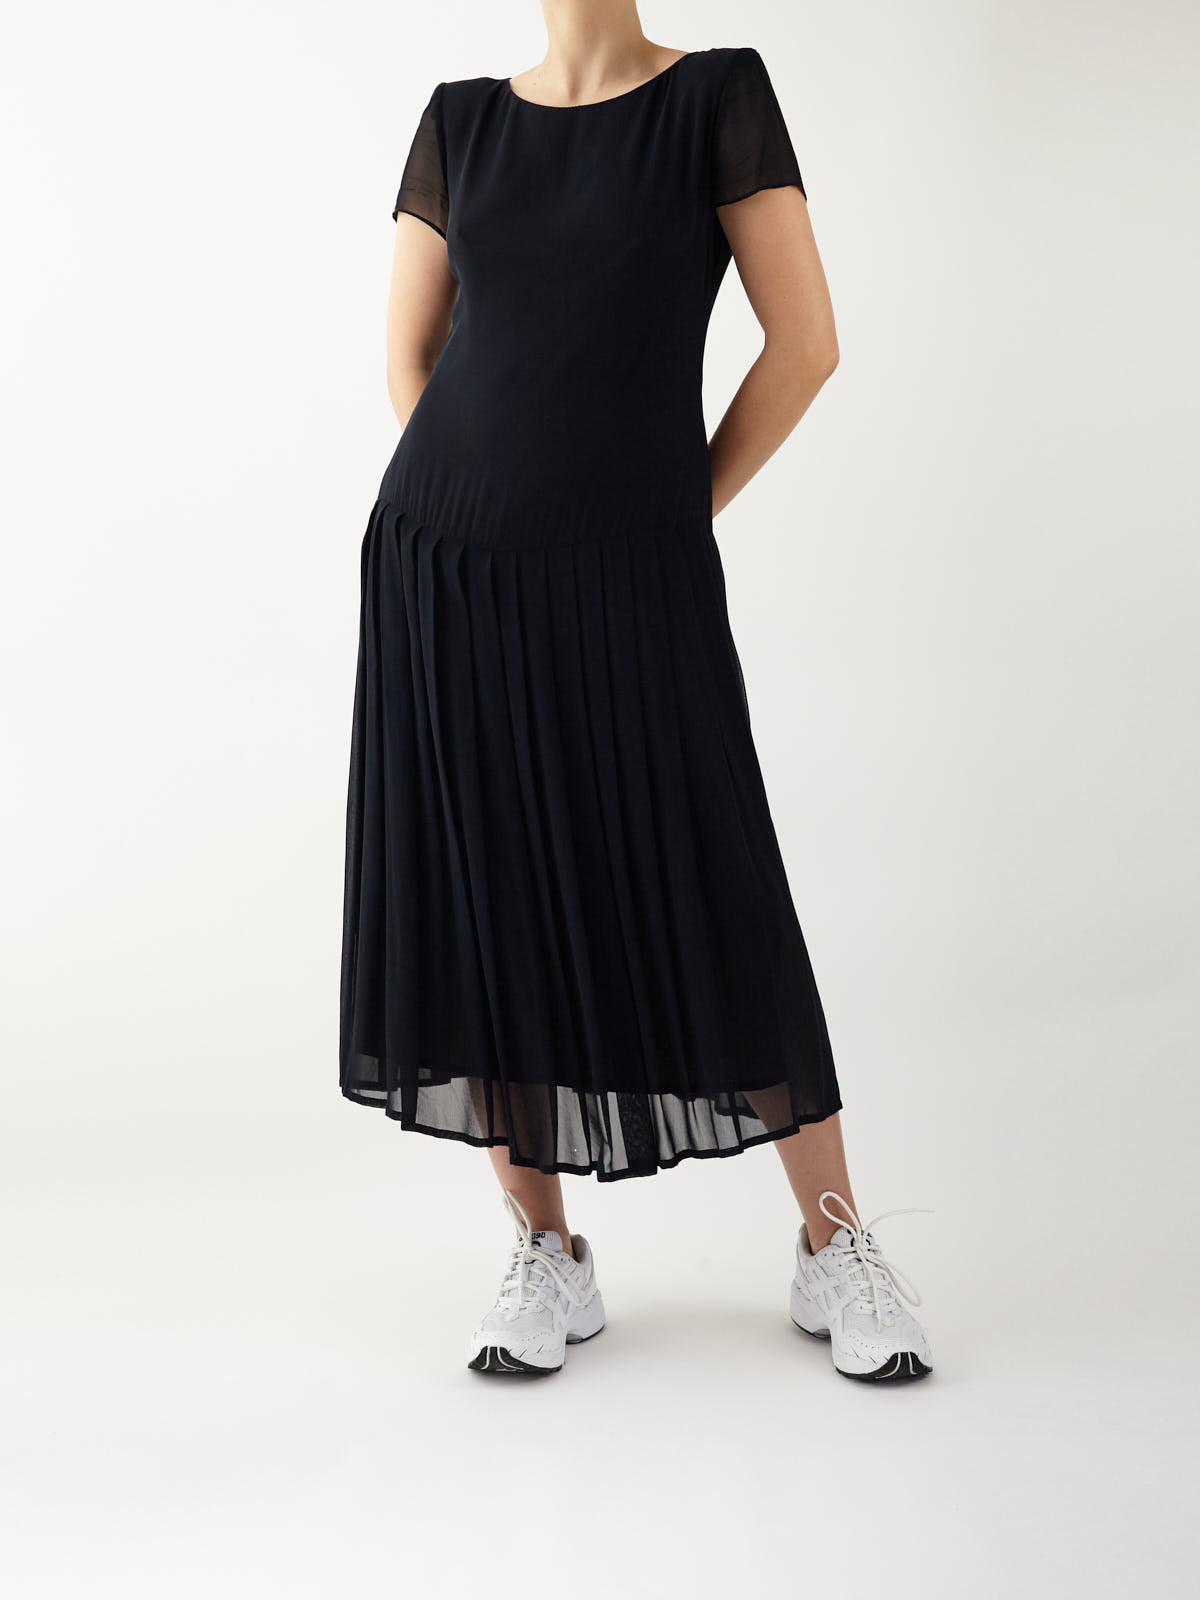 Max and Co. Pleated Dress